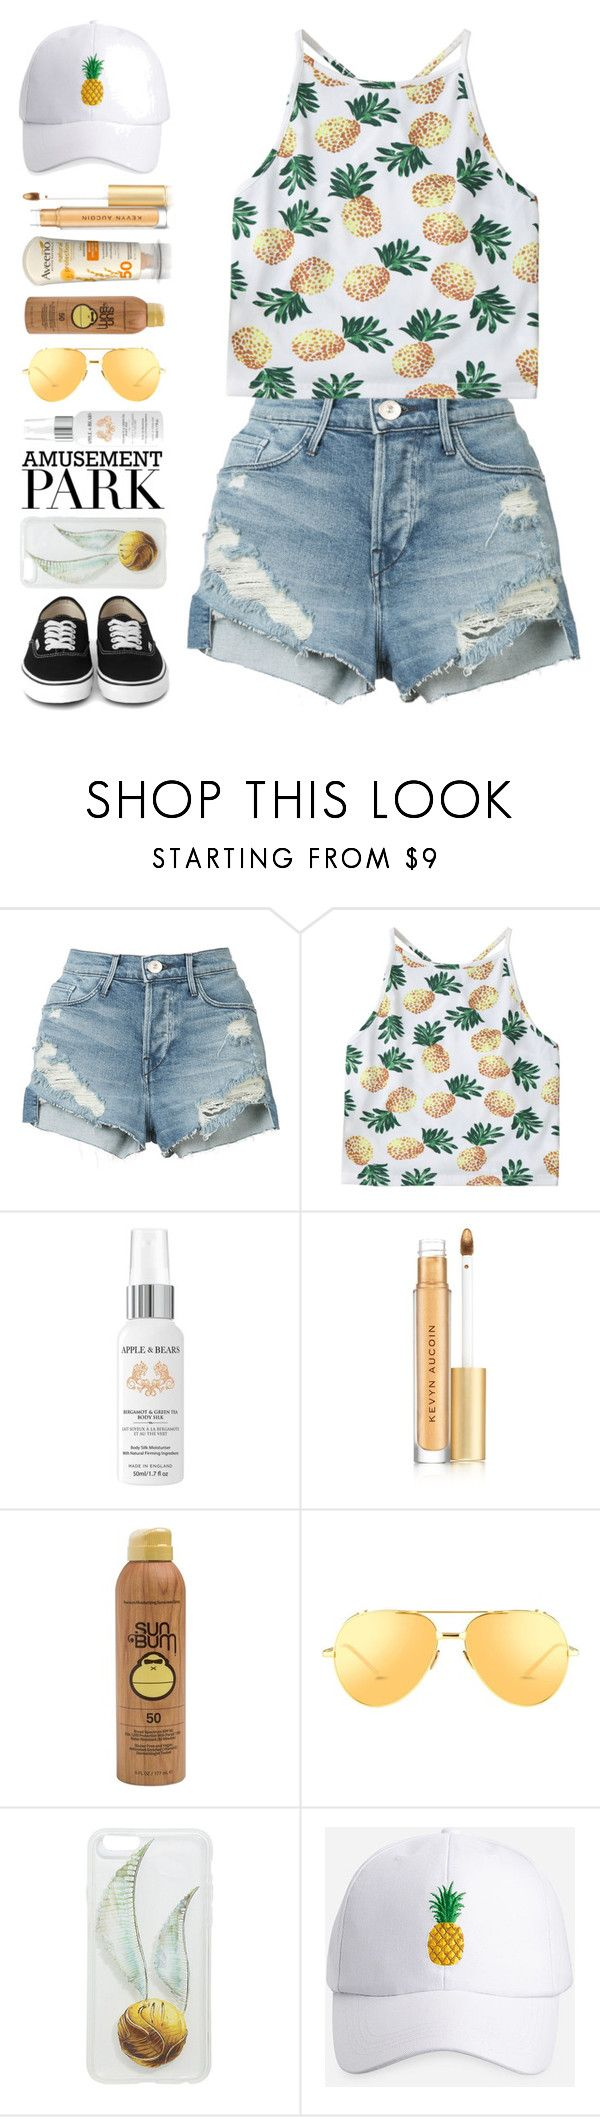 """Caroline"" by brie-the-pixie ❤ liked on Polyvore featuring 3x1, Apple & Bears, Aveeno, Kevyn Aucoin, Sun Bum, Linda Farrow, Hot Topic, Ashley Stewart, amusementpark and 60secondstyle"